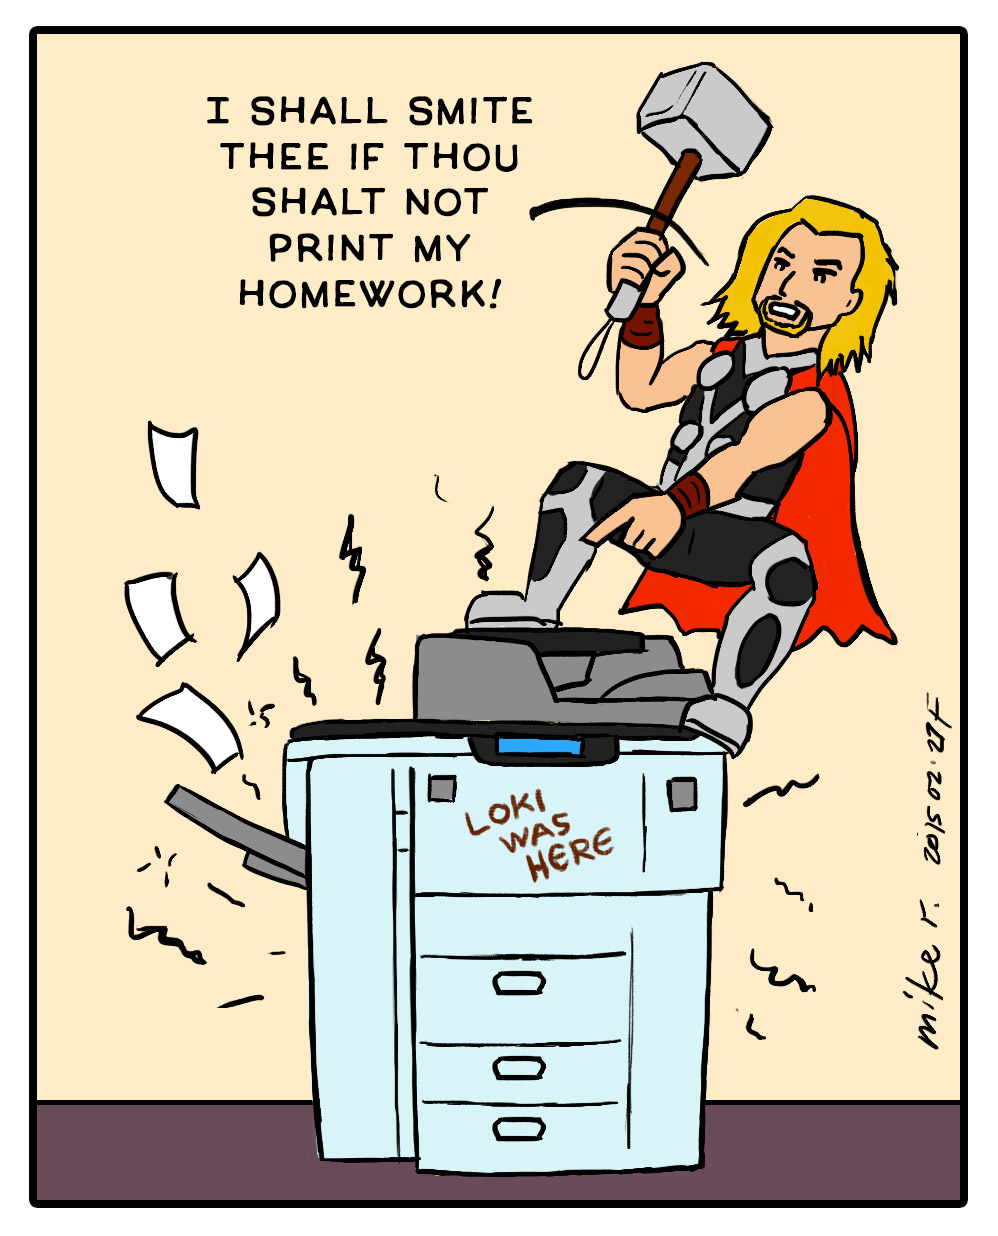 thor has printer problems by mirisu92 on deviantart